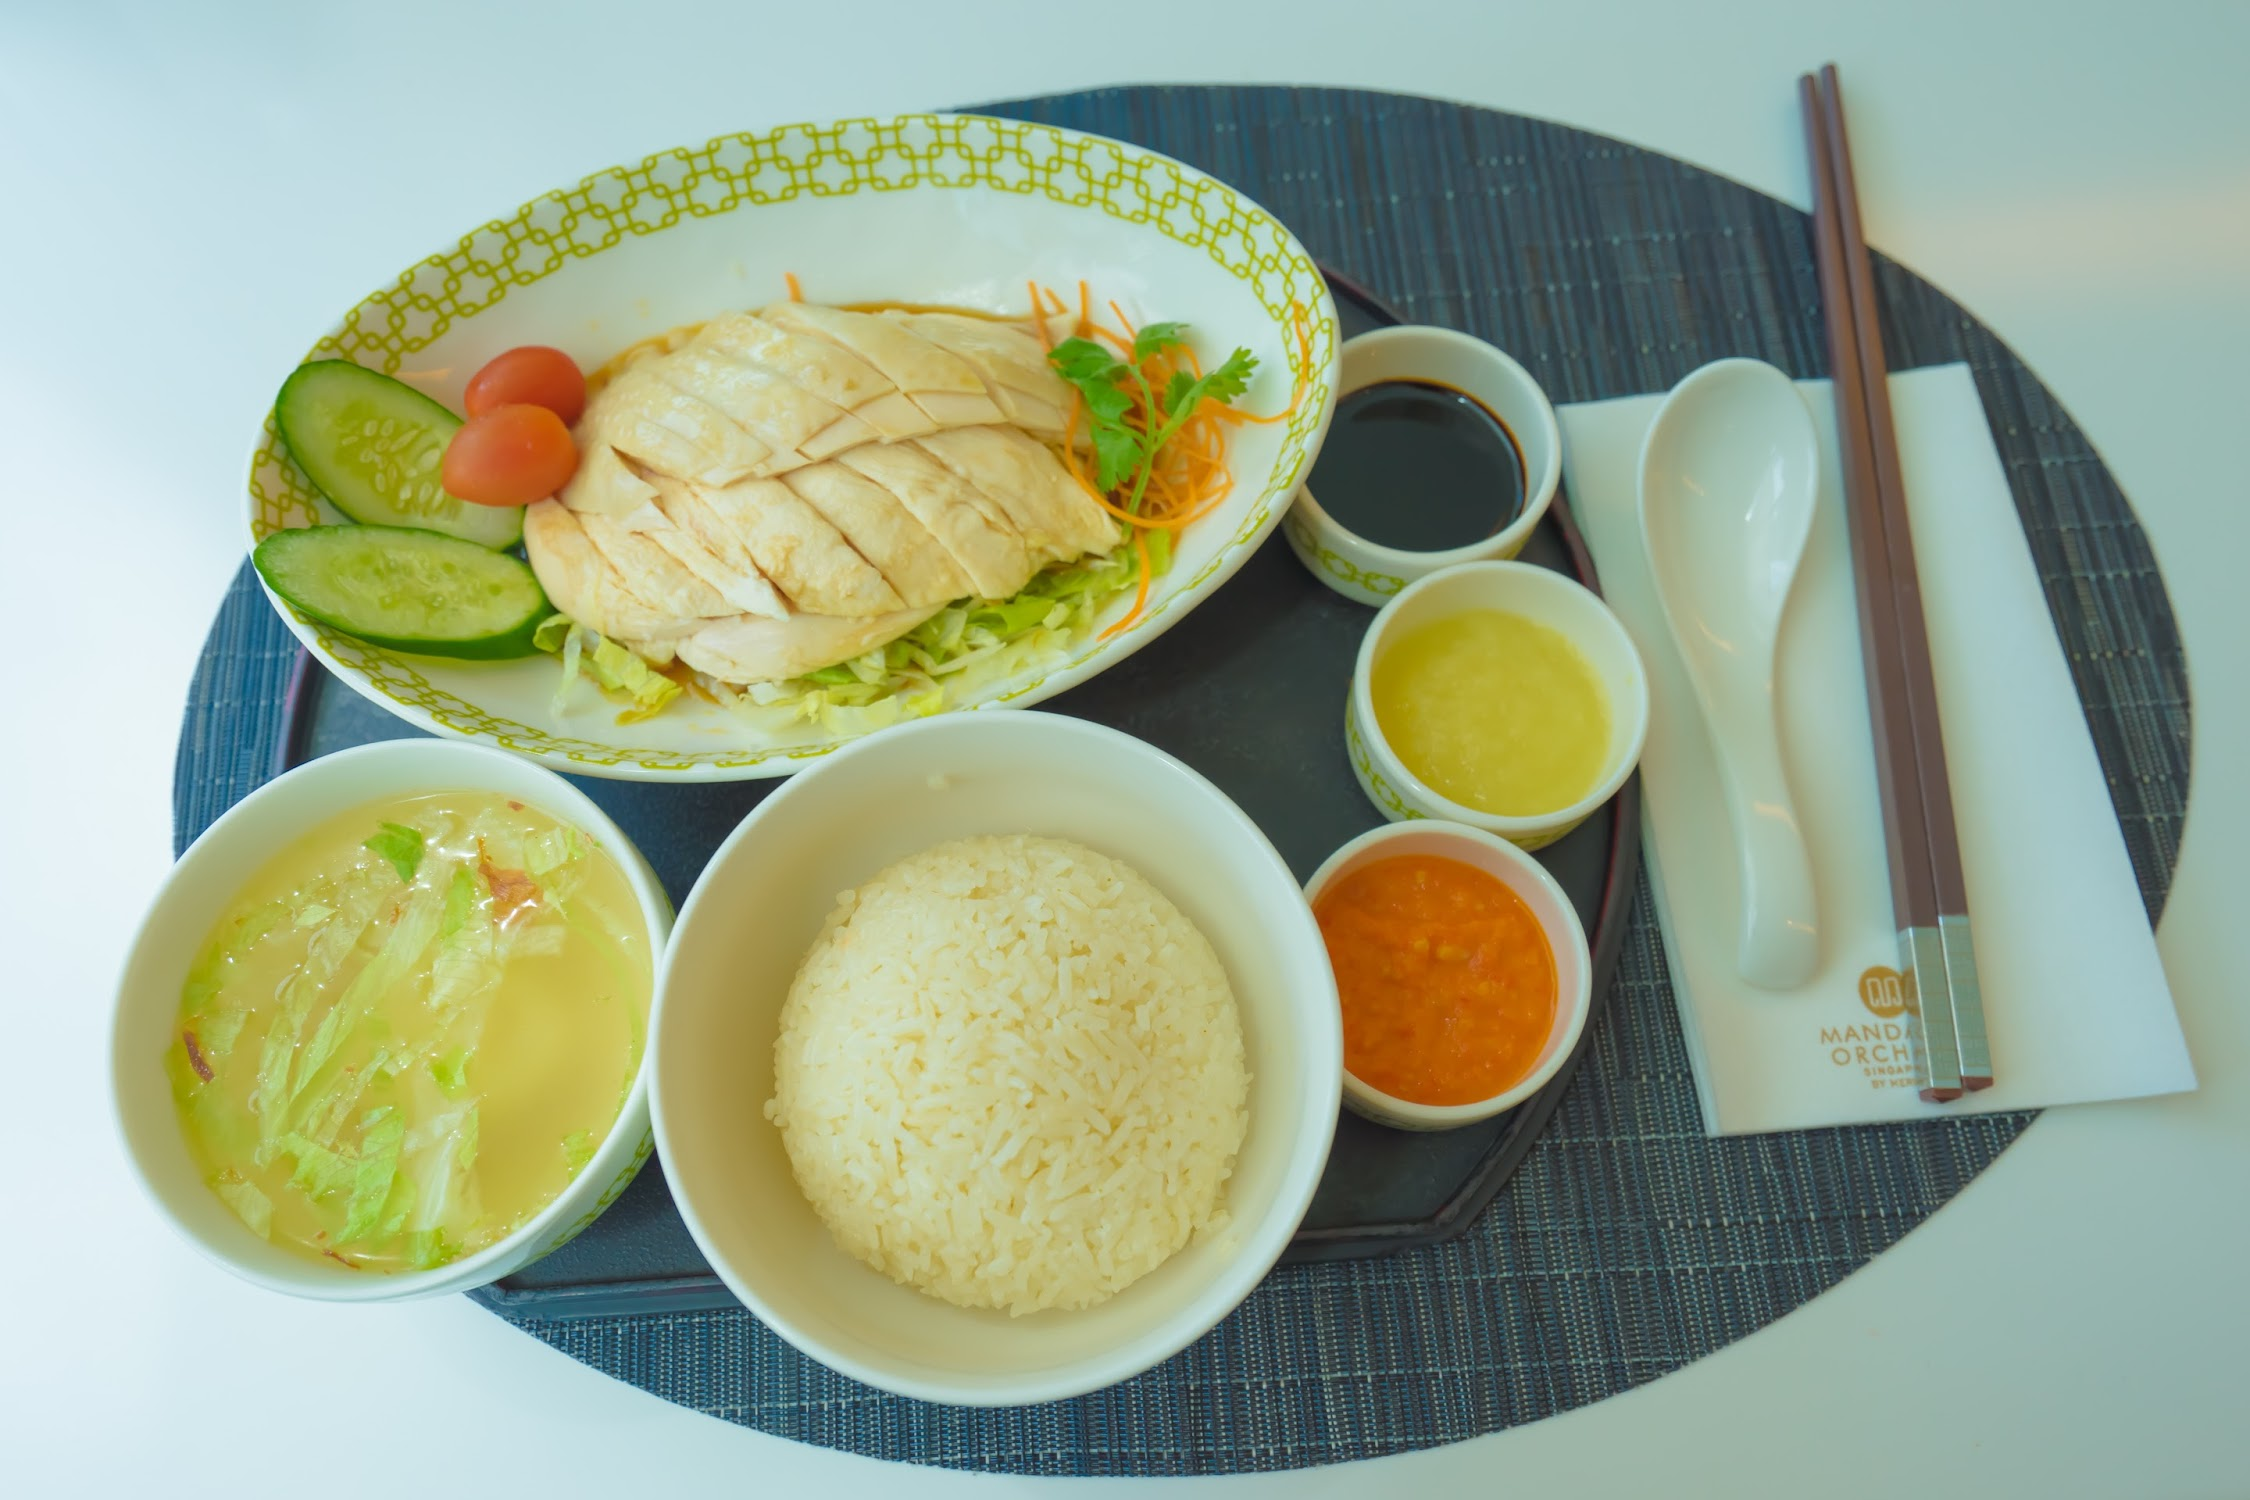 Singapore Chatterbox Chicken rice2